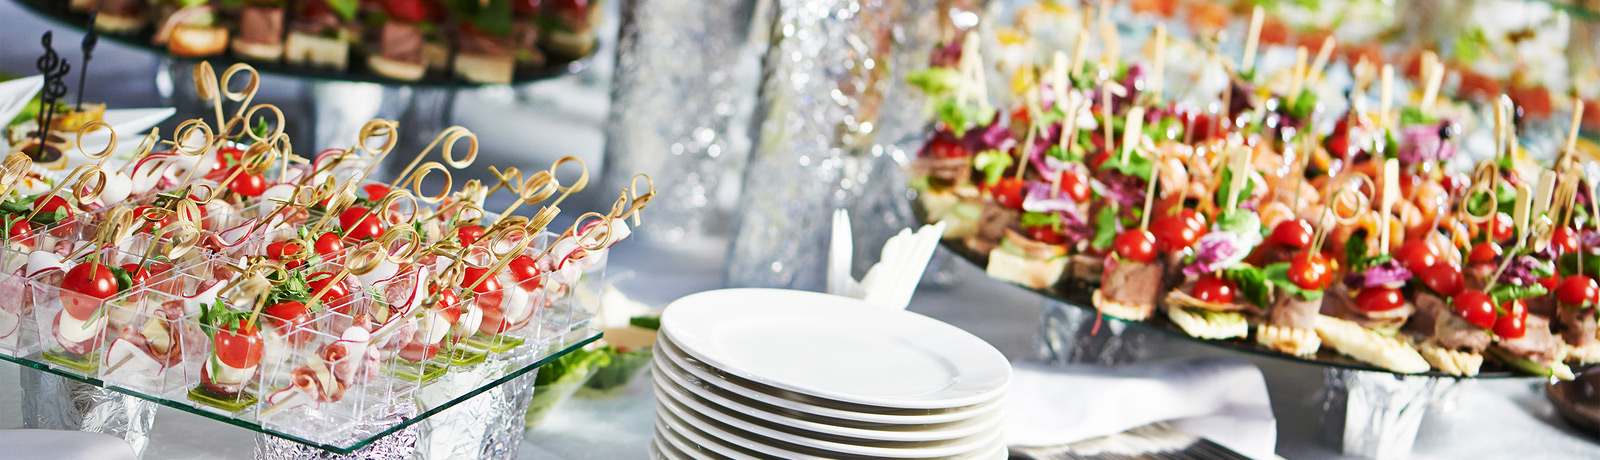 Catering-Allegra-Banquets